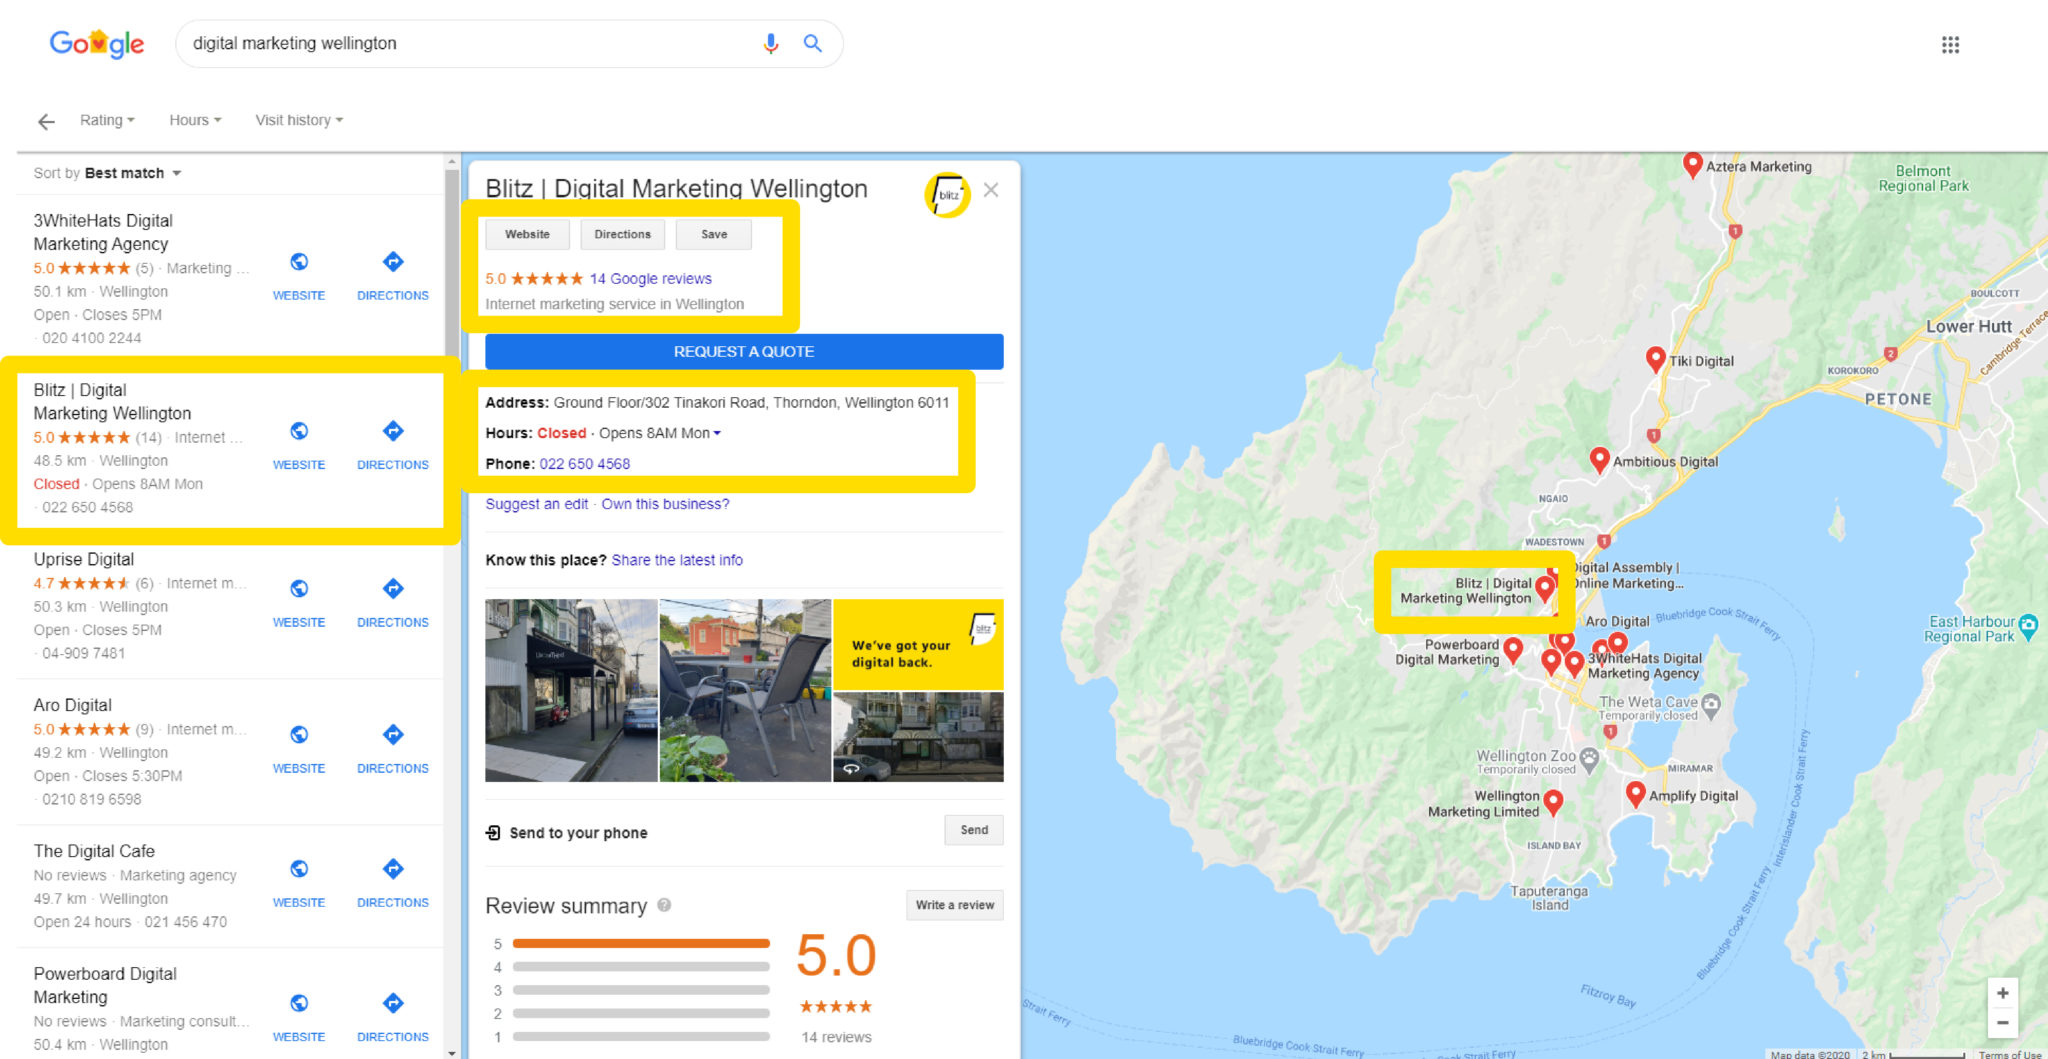 Overview of results related to digital marketing wellington in Google